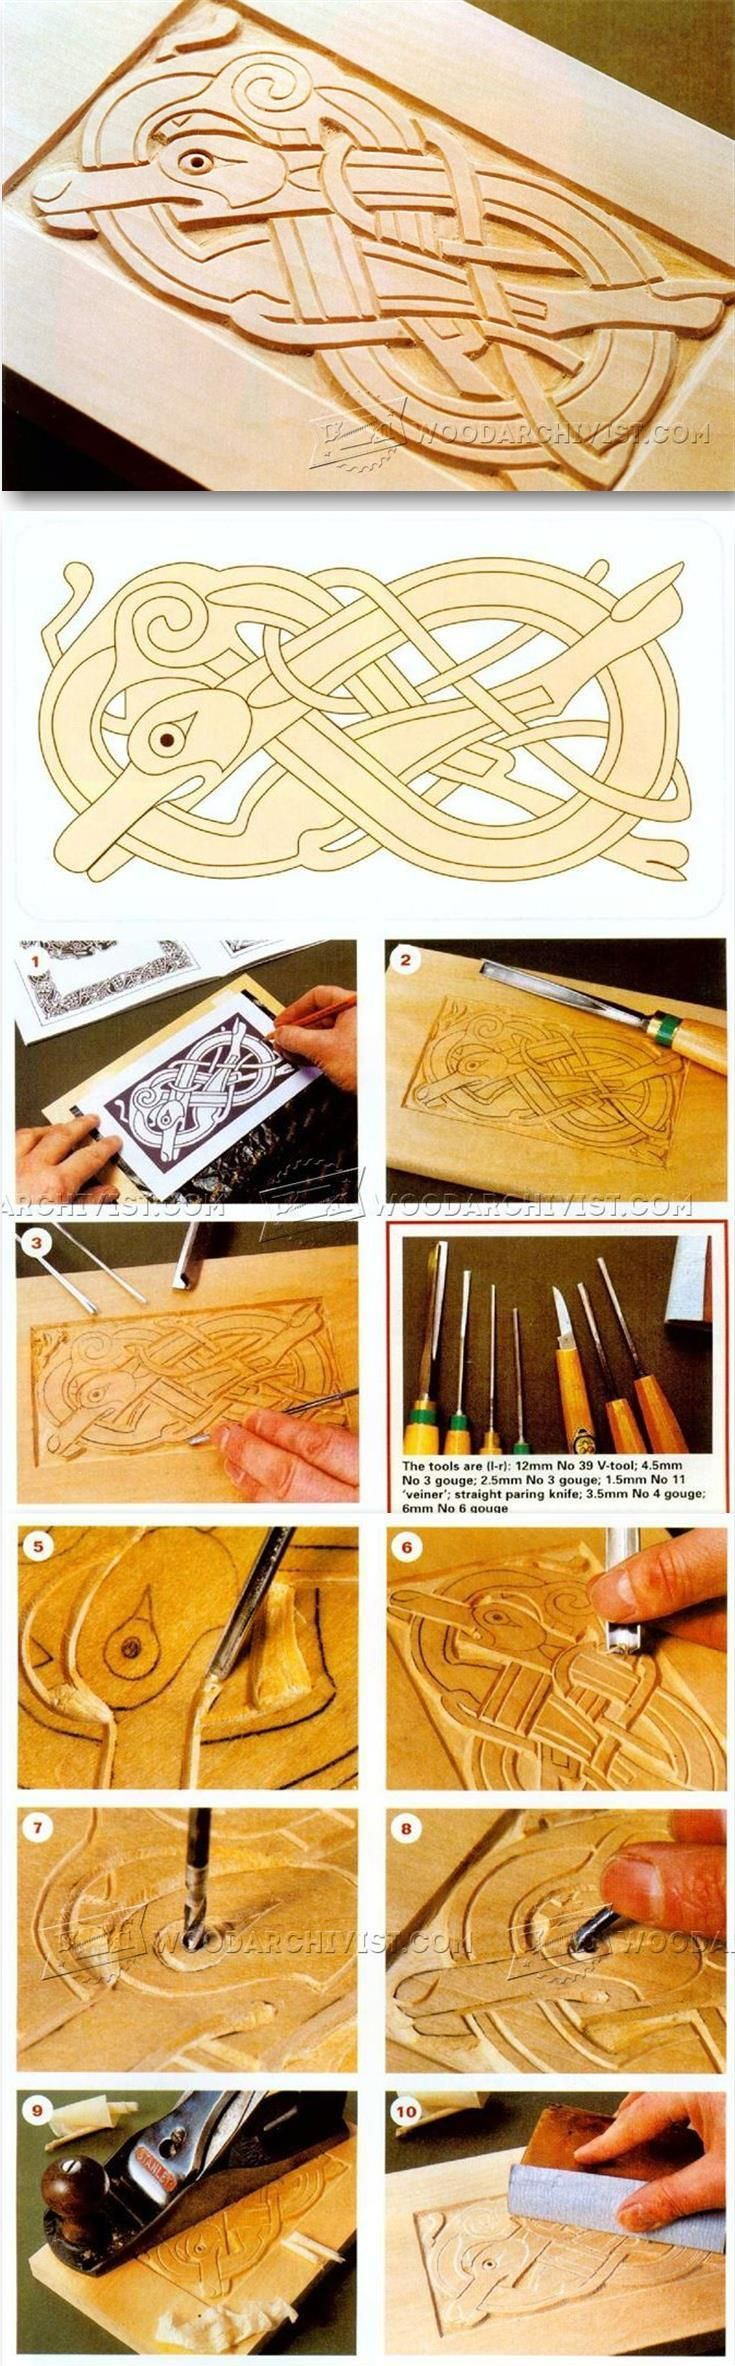 Celtic Wood Carving - Wood Carving Patterns and Techniques | WoodArchivist.com